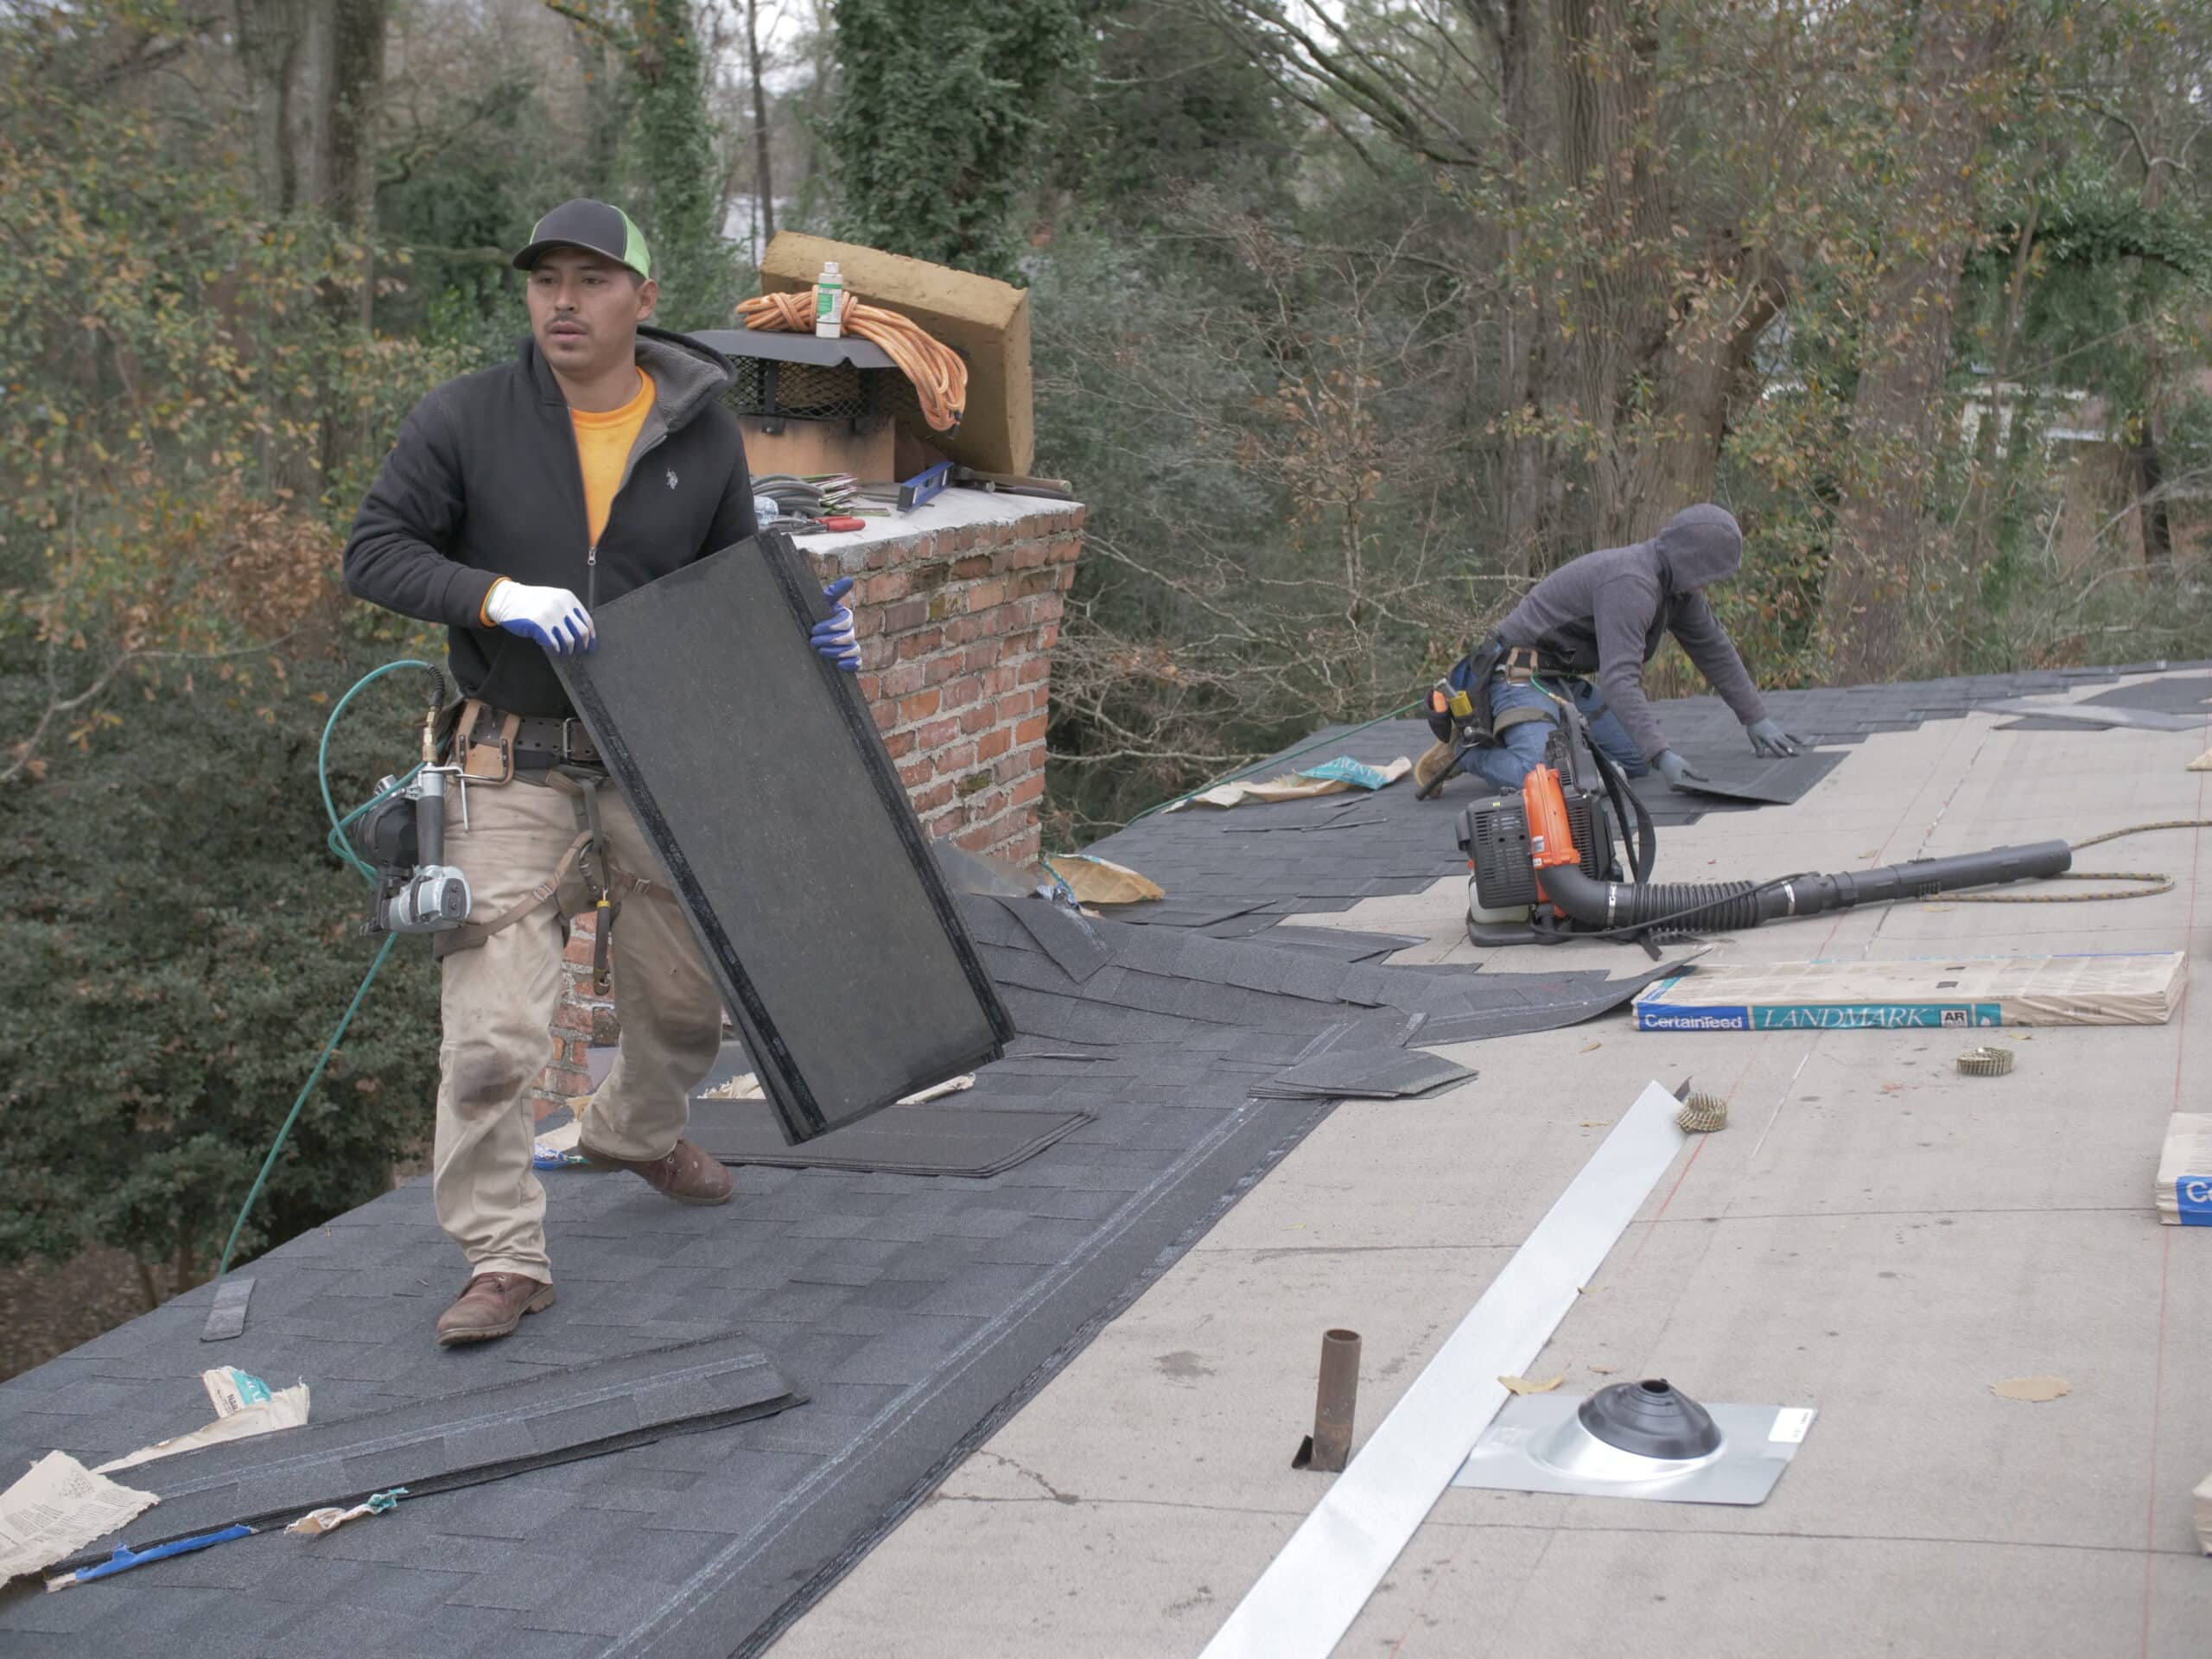 commercial roofing AL services. iRoof roofer is making commercial services